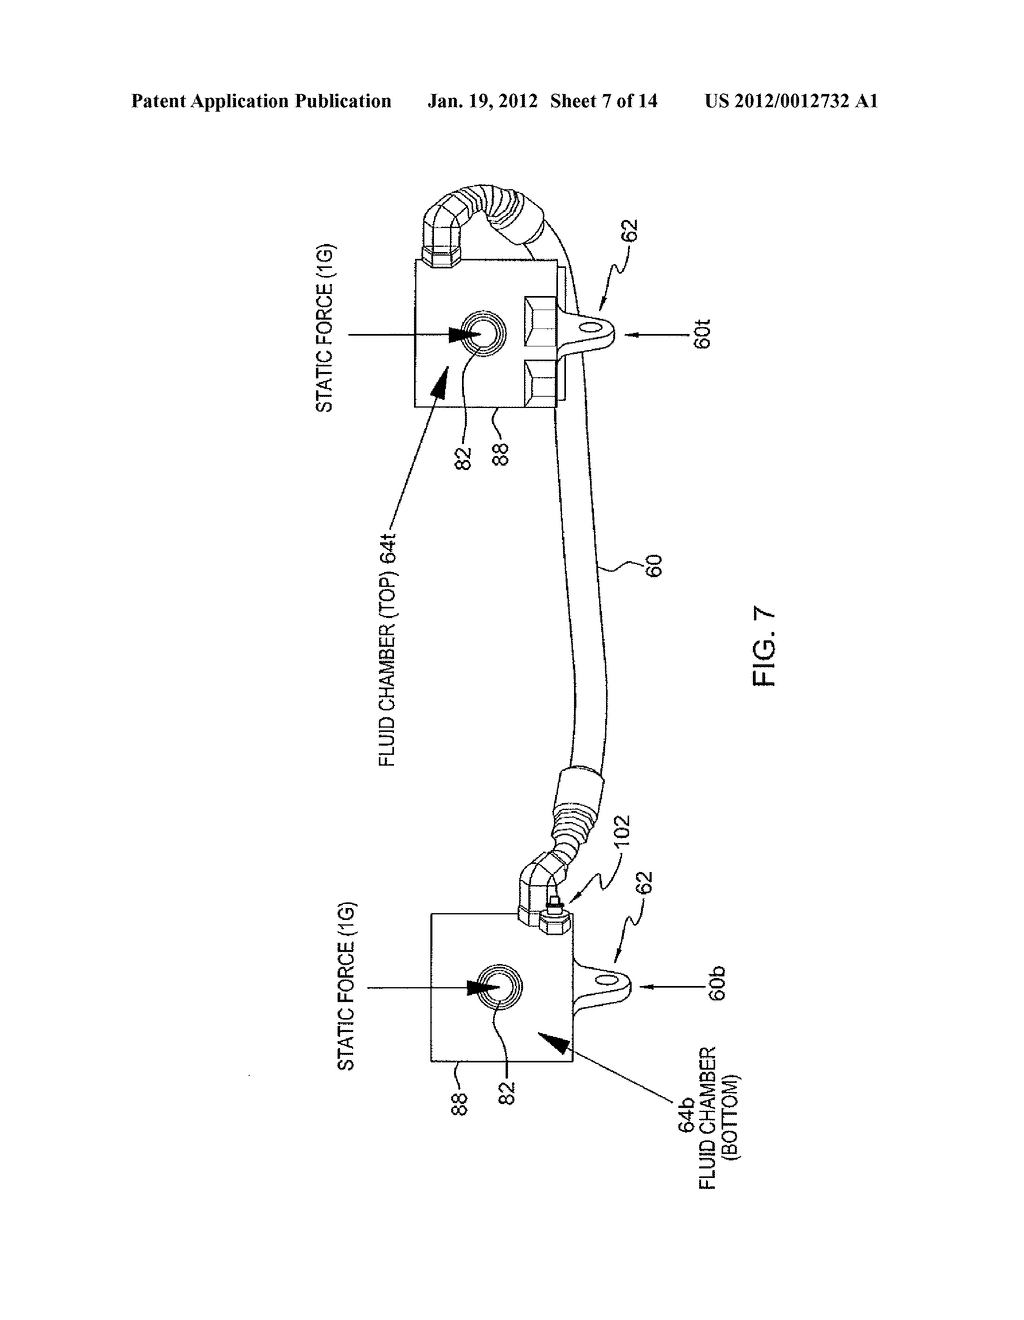 hight resolution of helicopter engine mounting system and methods diagram schematic and image 08